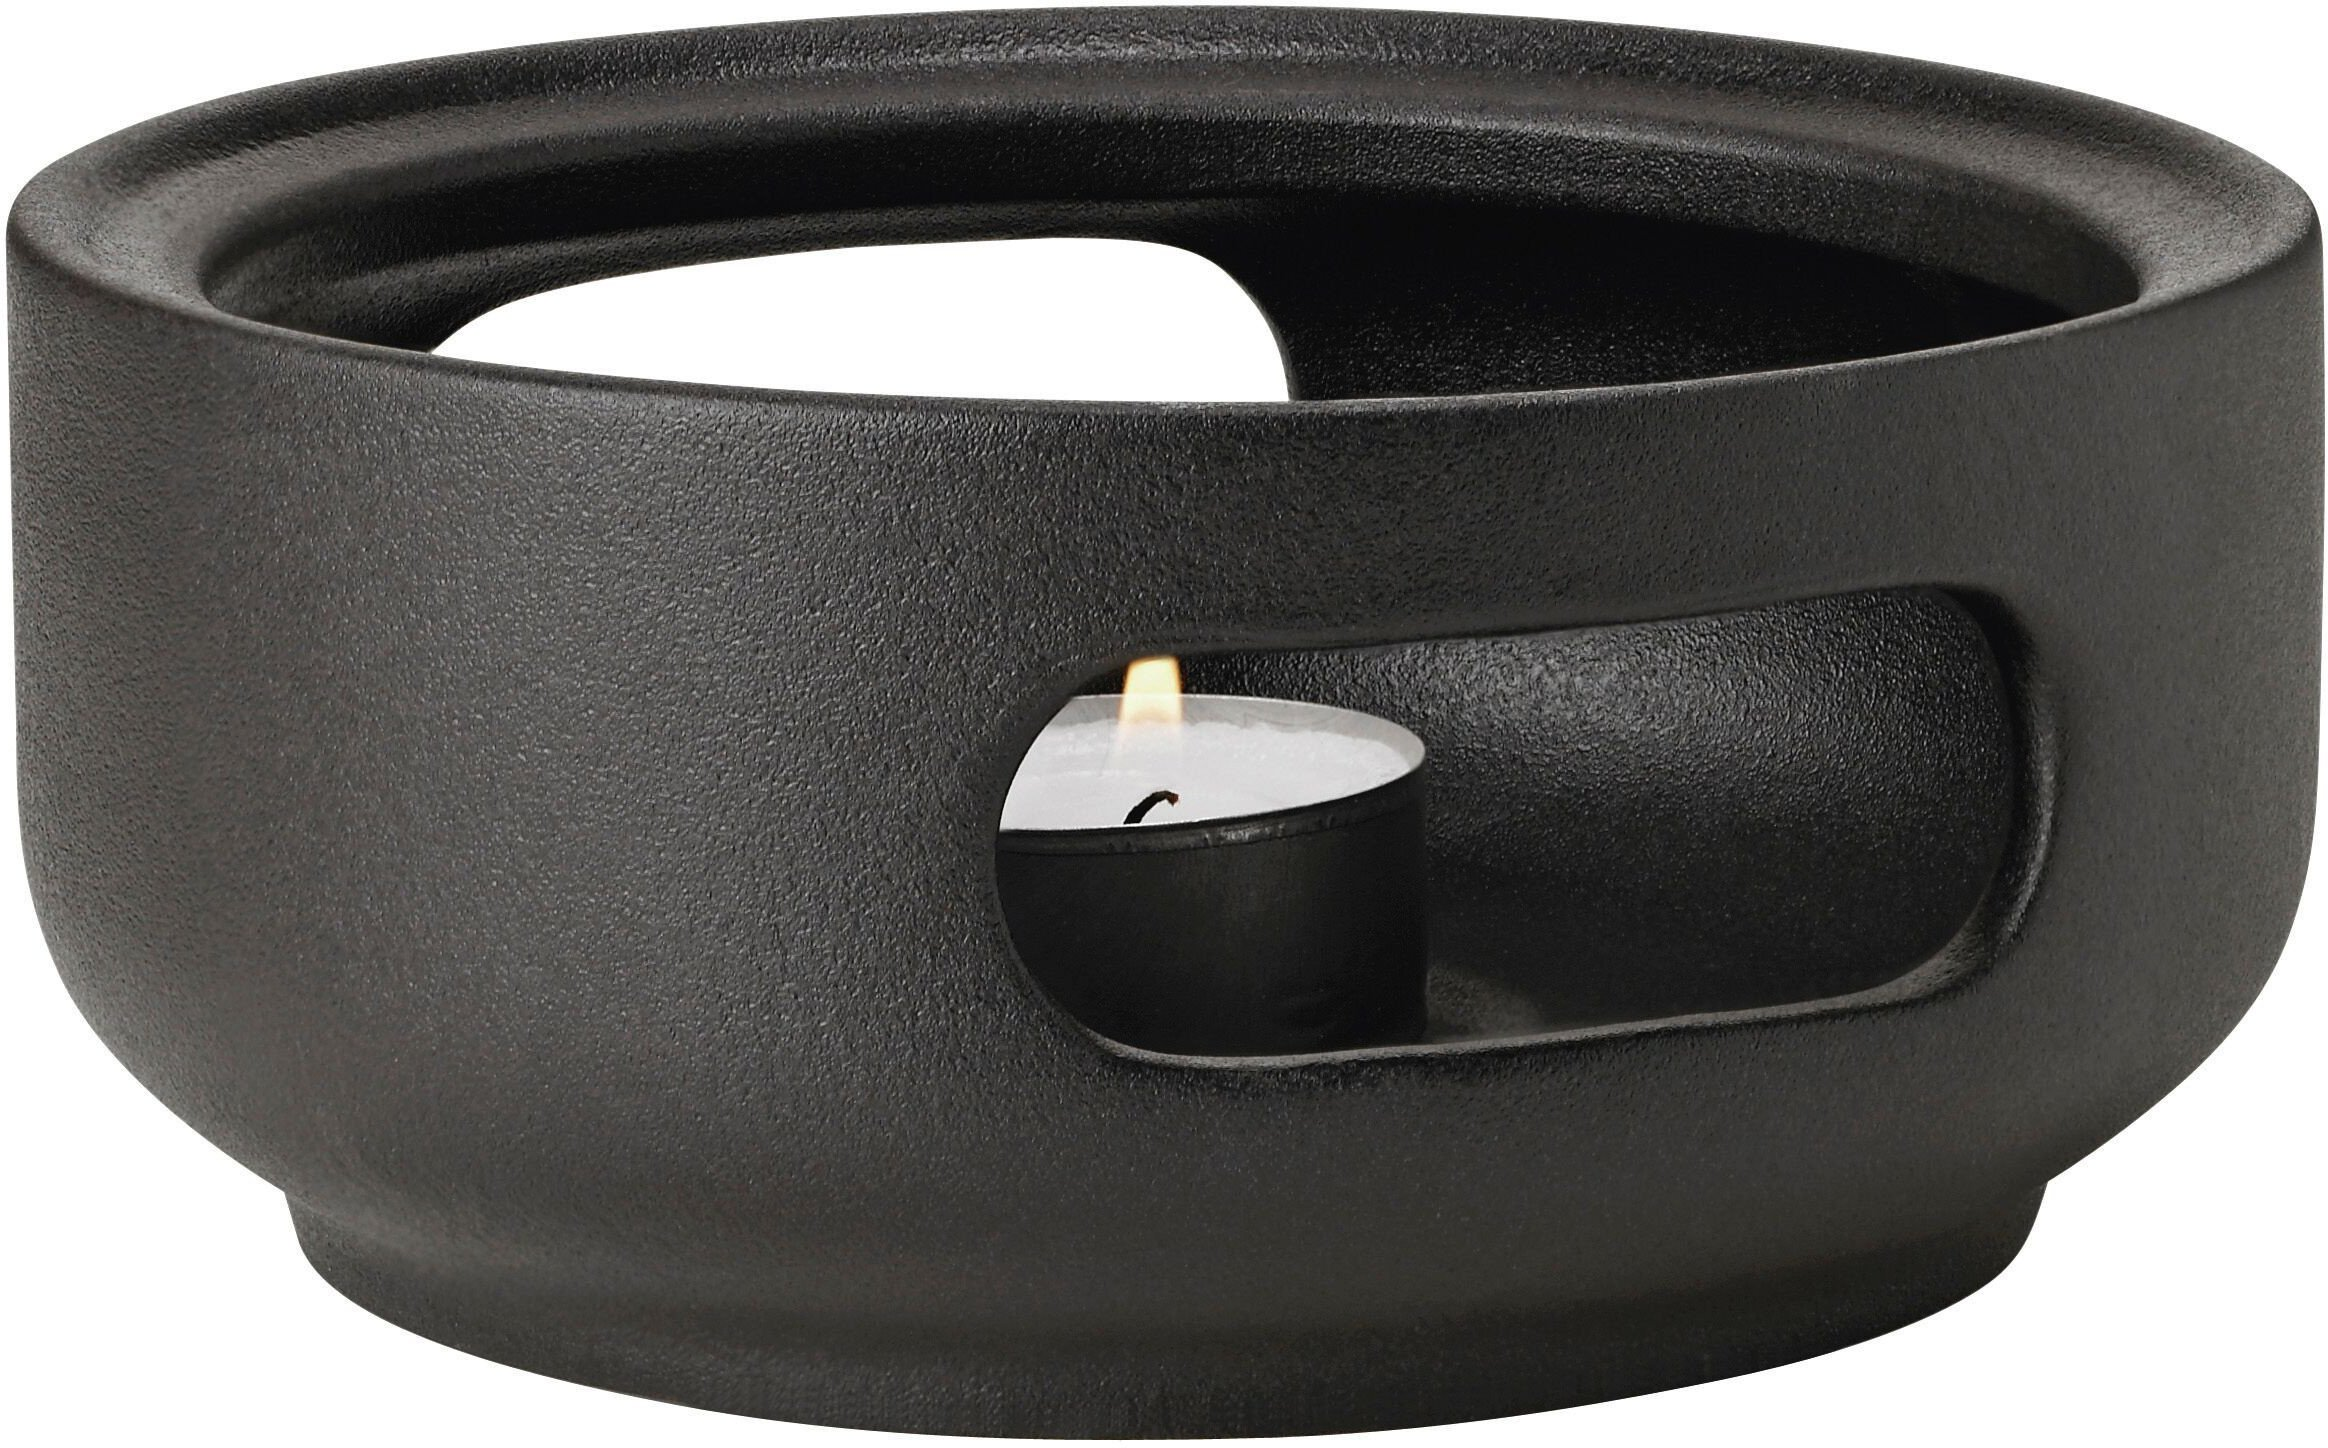 Theo Teapot Warmer Black by F. Cayouette for Stelton